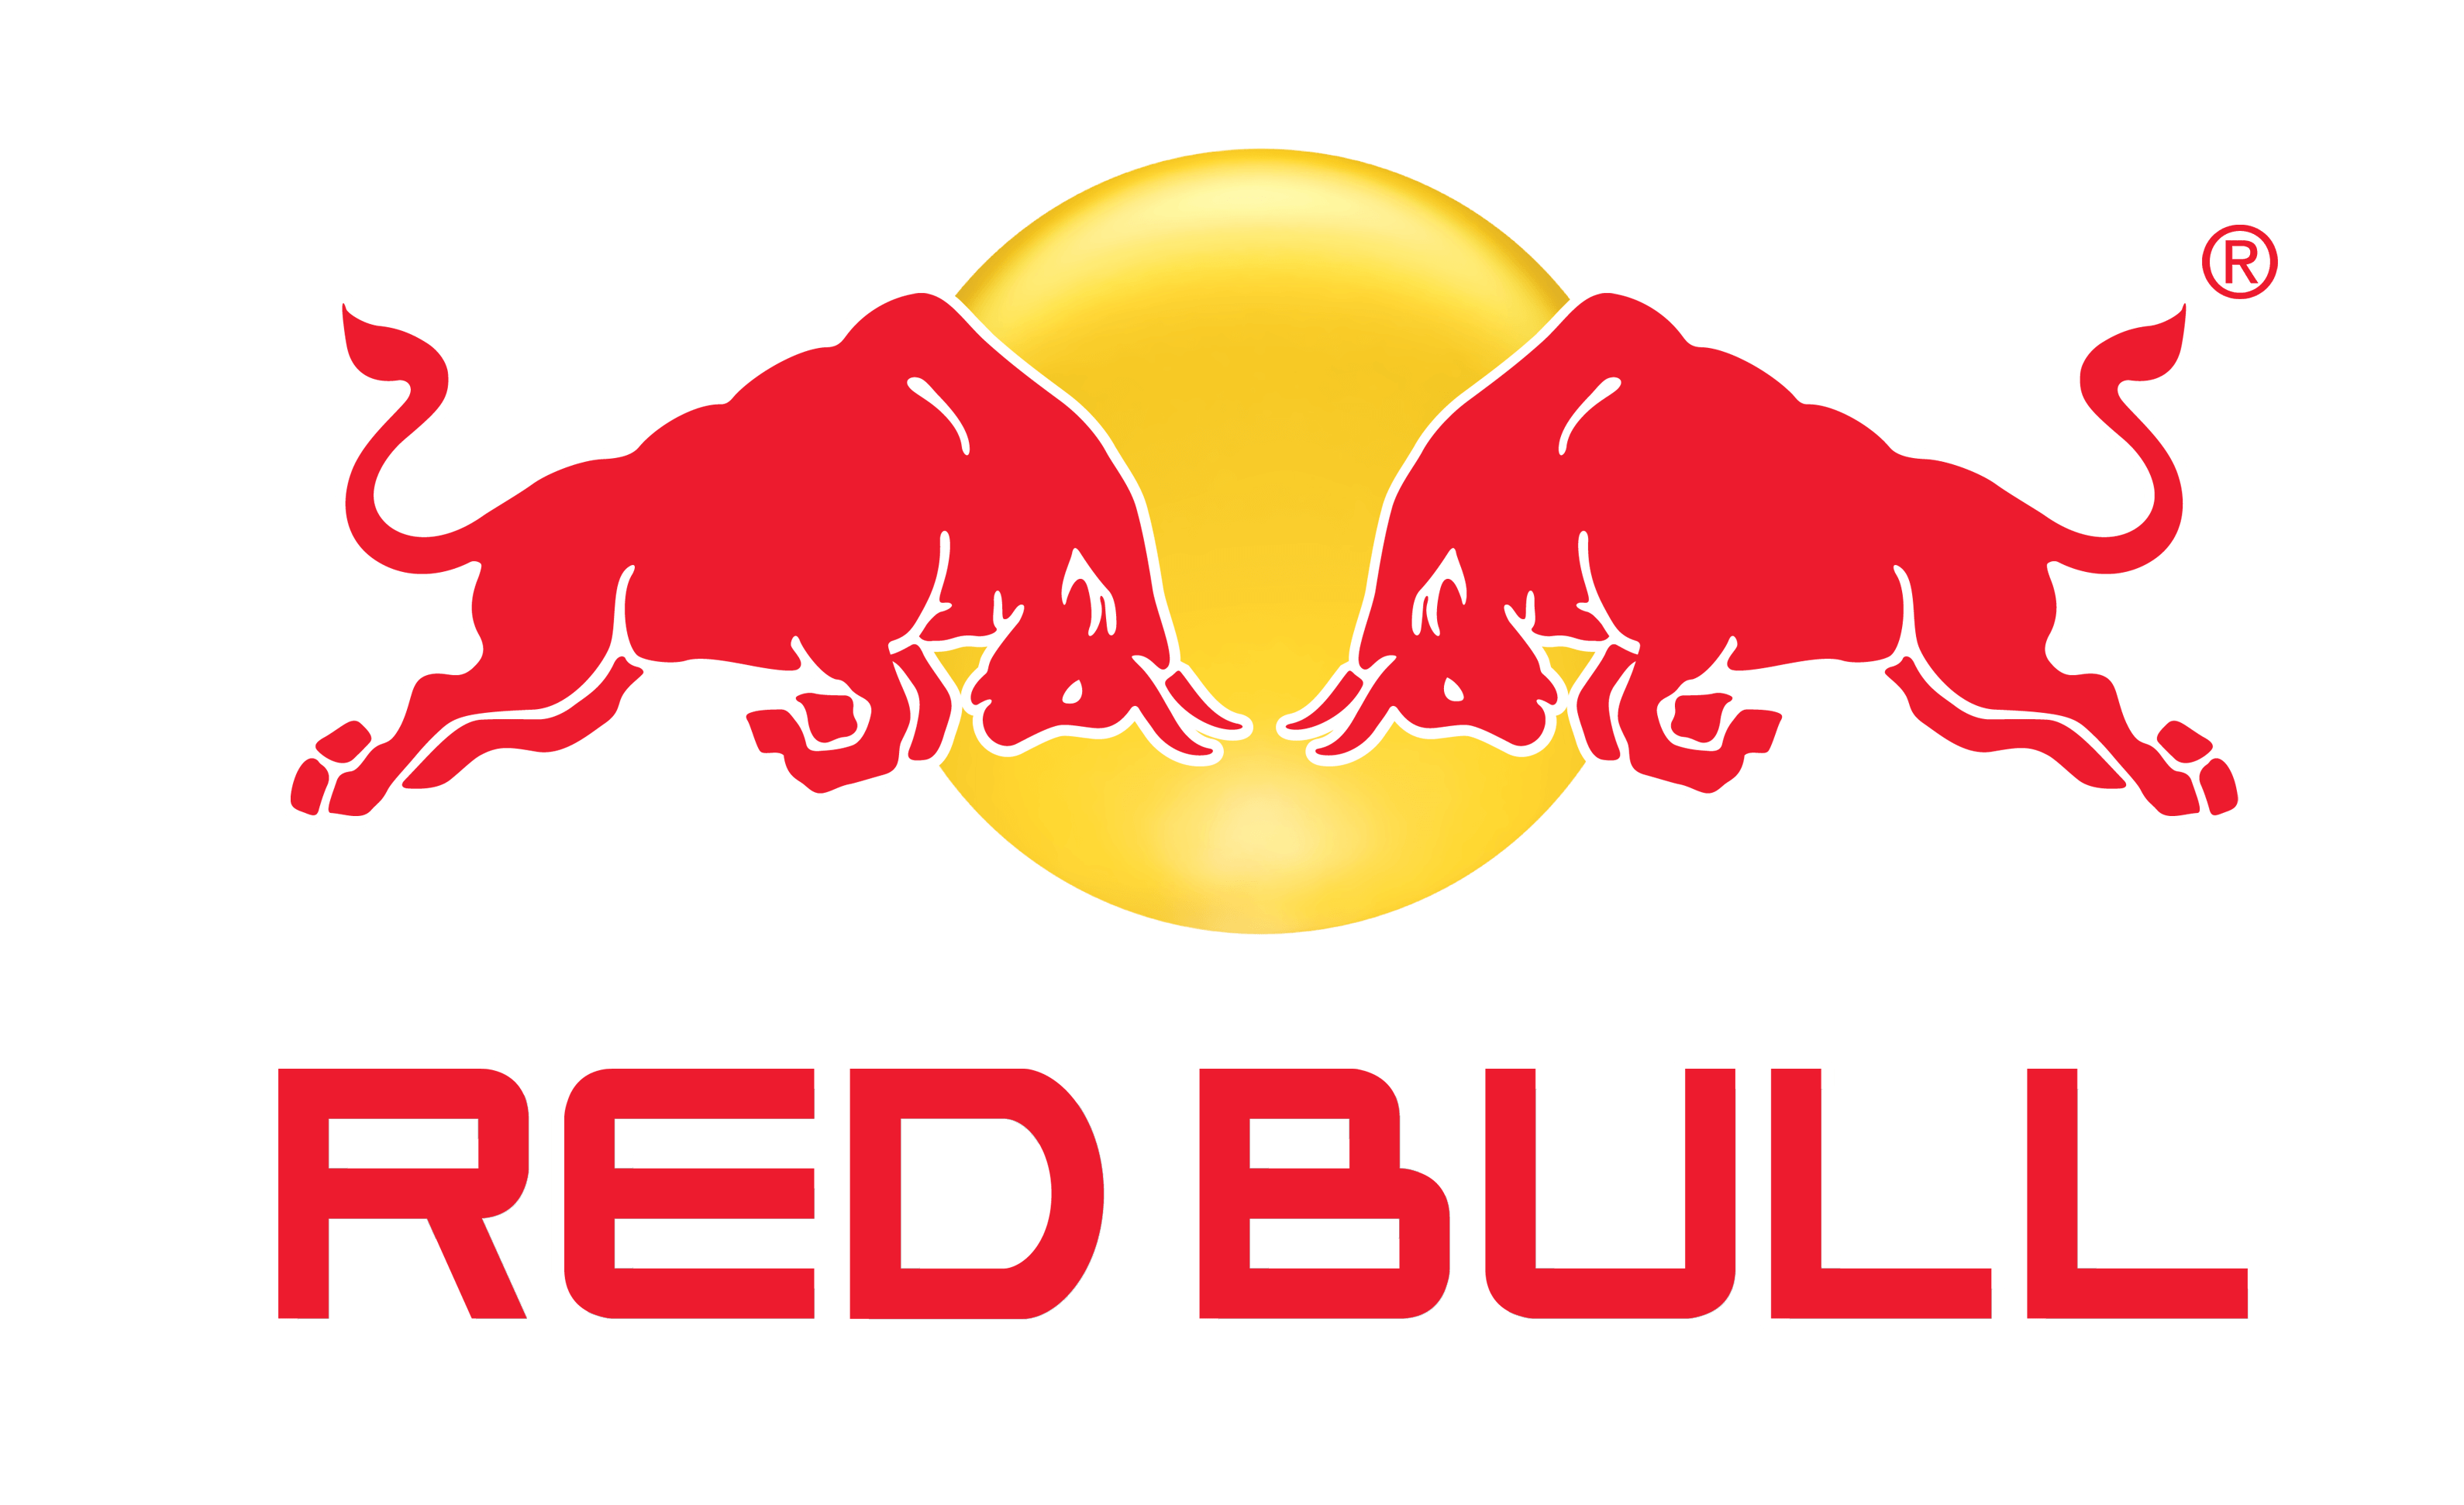 Red Bull Logo - Red Bull, Transparent background PNG HD thumbnail